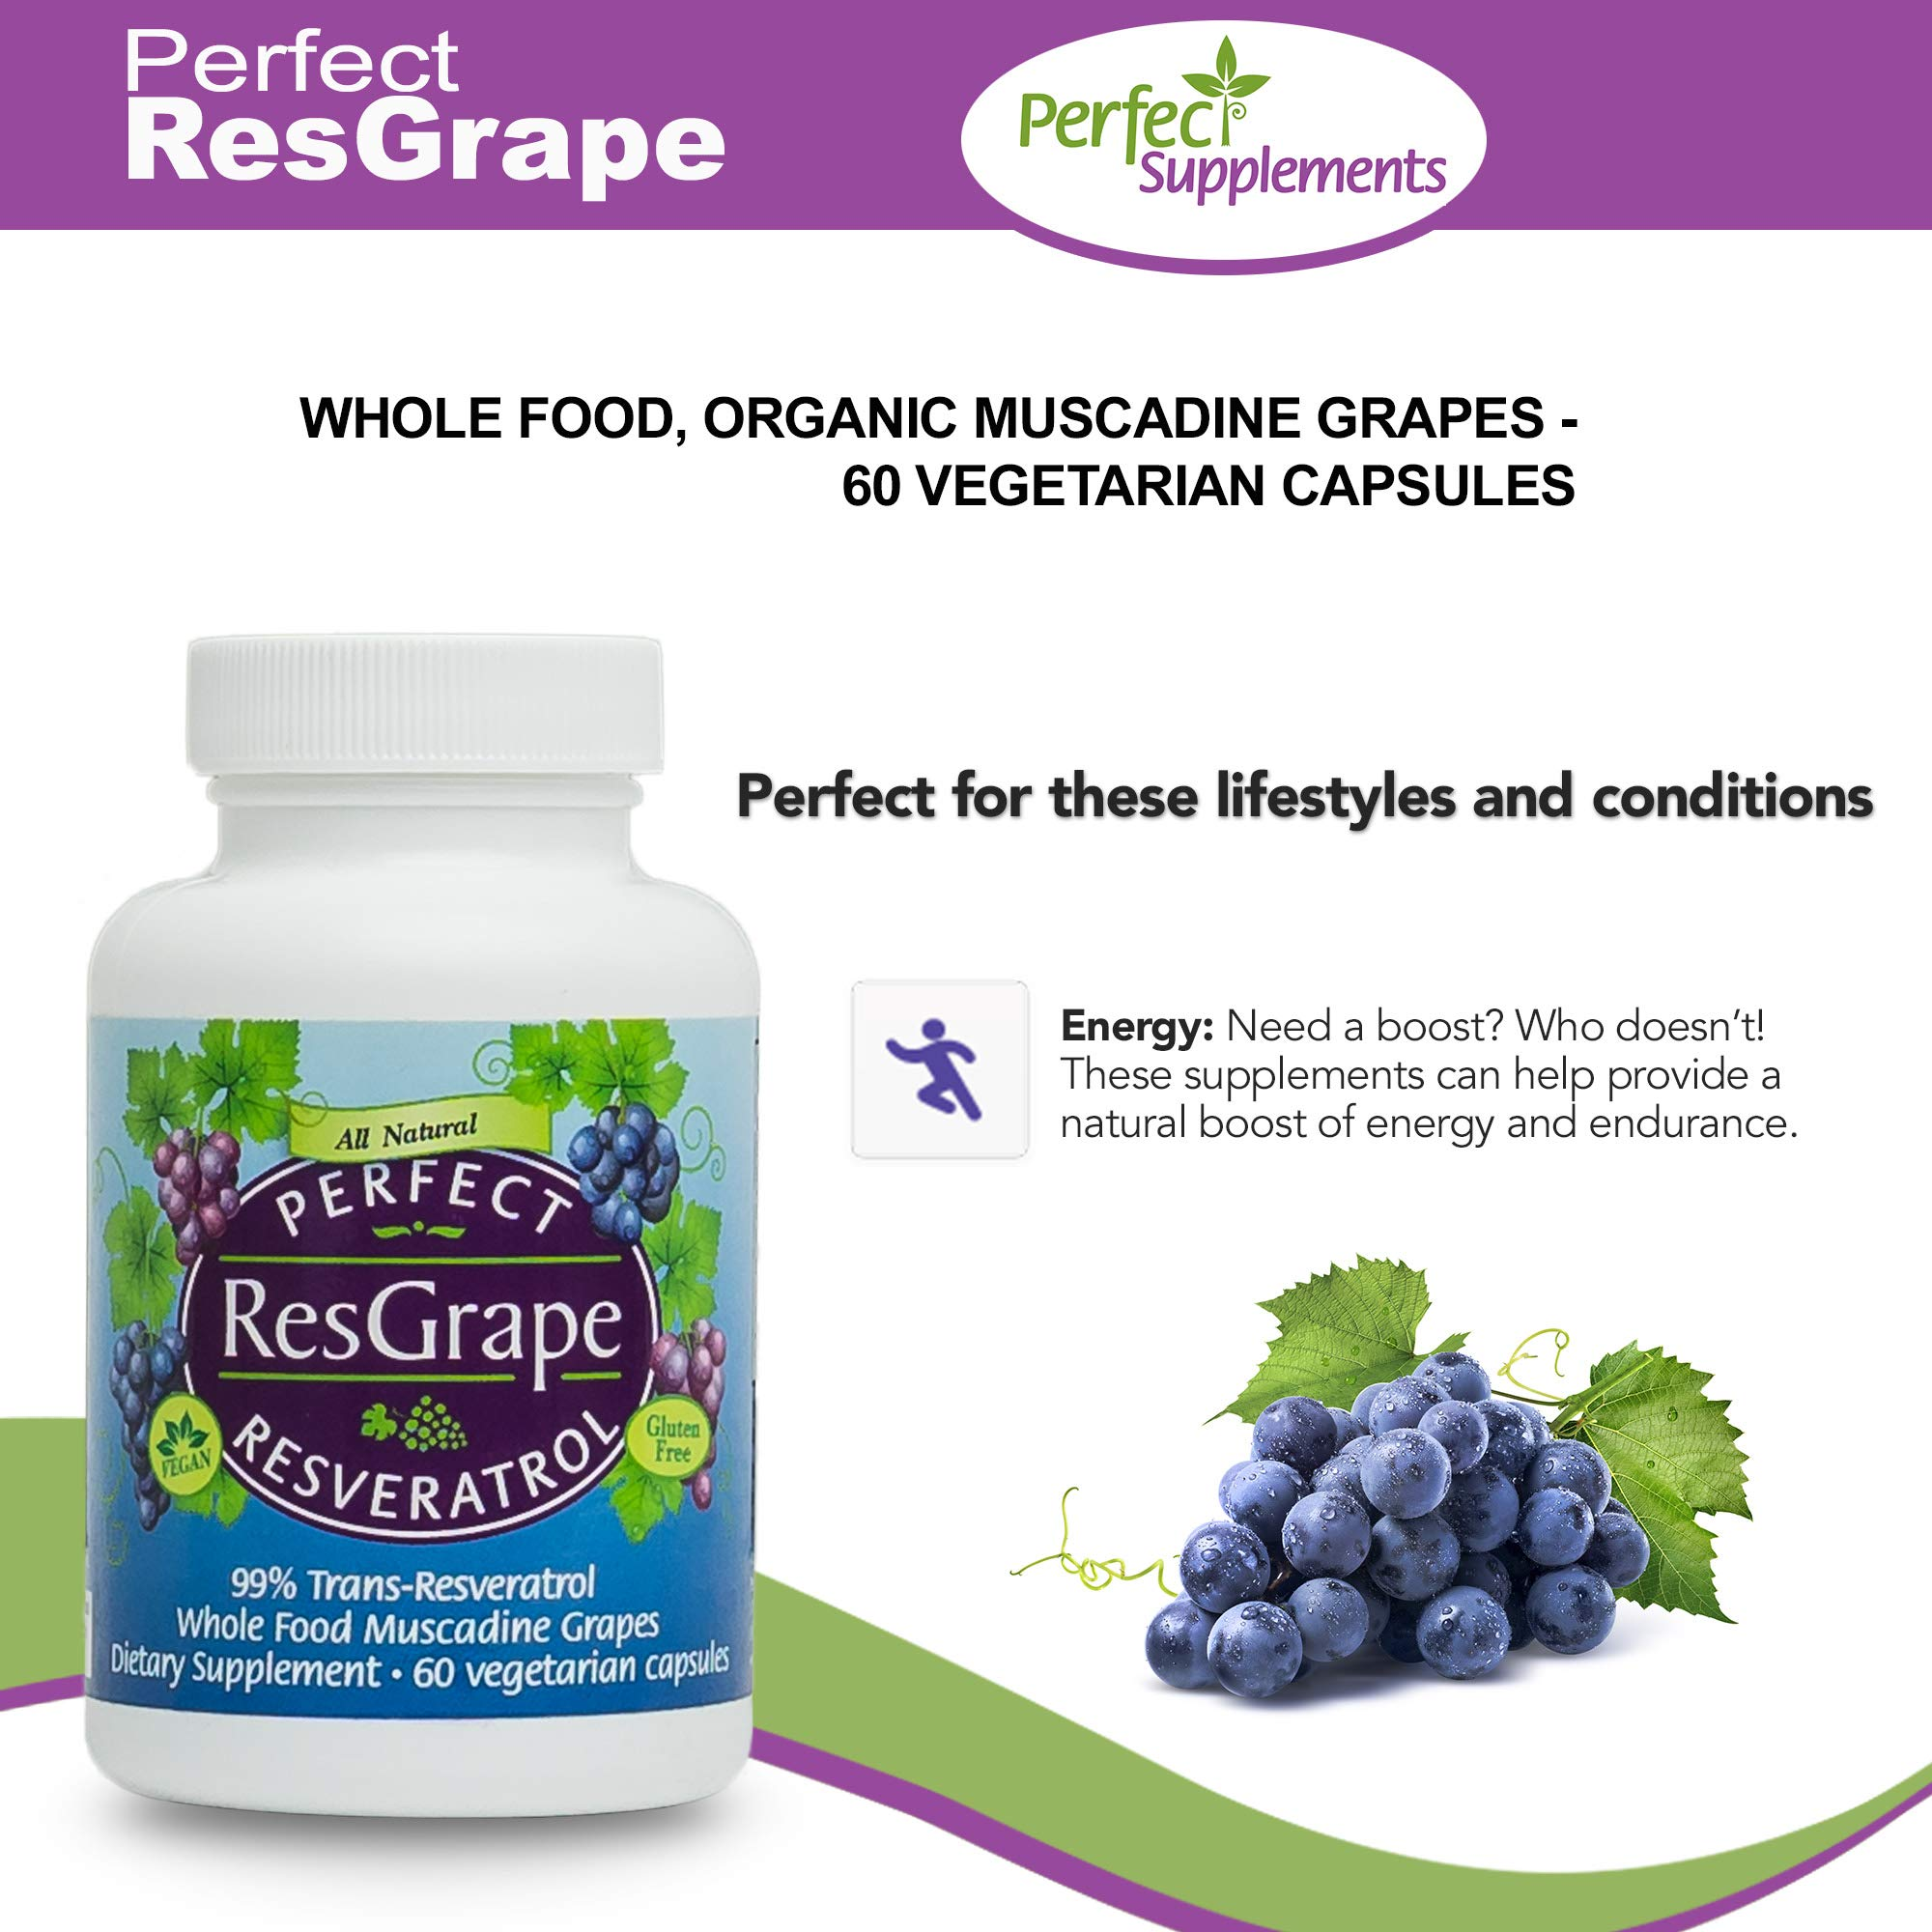 Perfect Resgrape Resveratrol Supplement - 200mg 99% Trans-Resvertarol - Made From Organic Muscadine Grapes - 60 Vegetable Capsules by Perfect Supplements (Image #3)